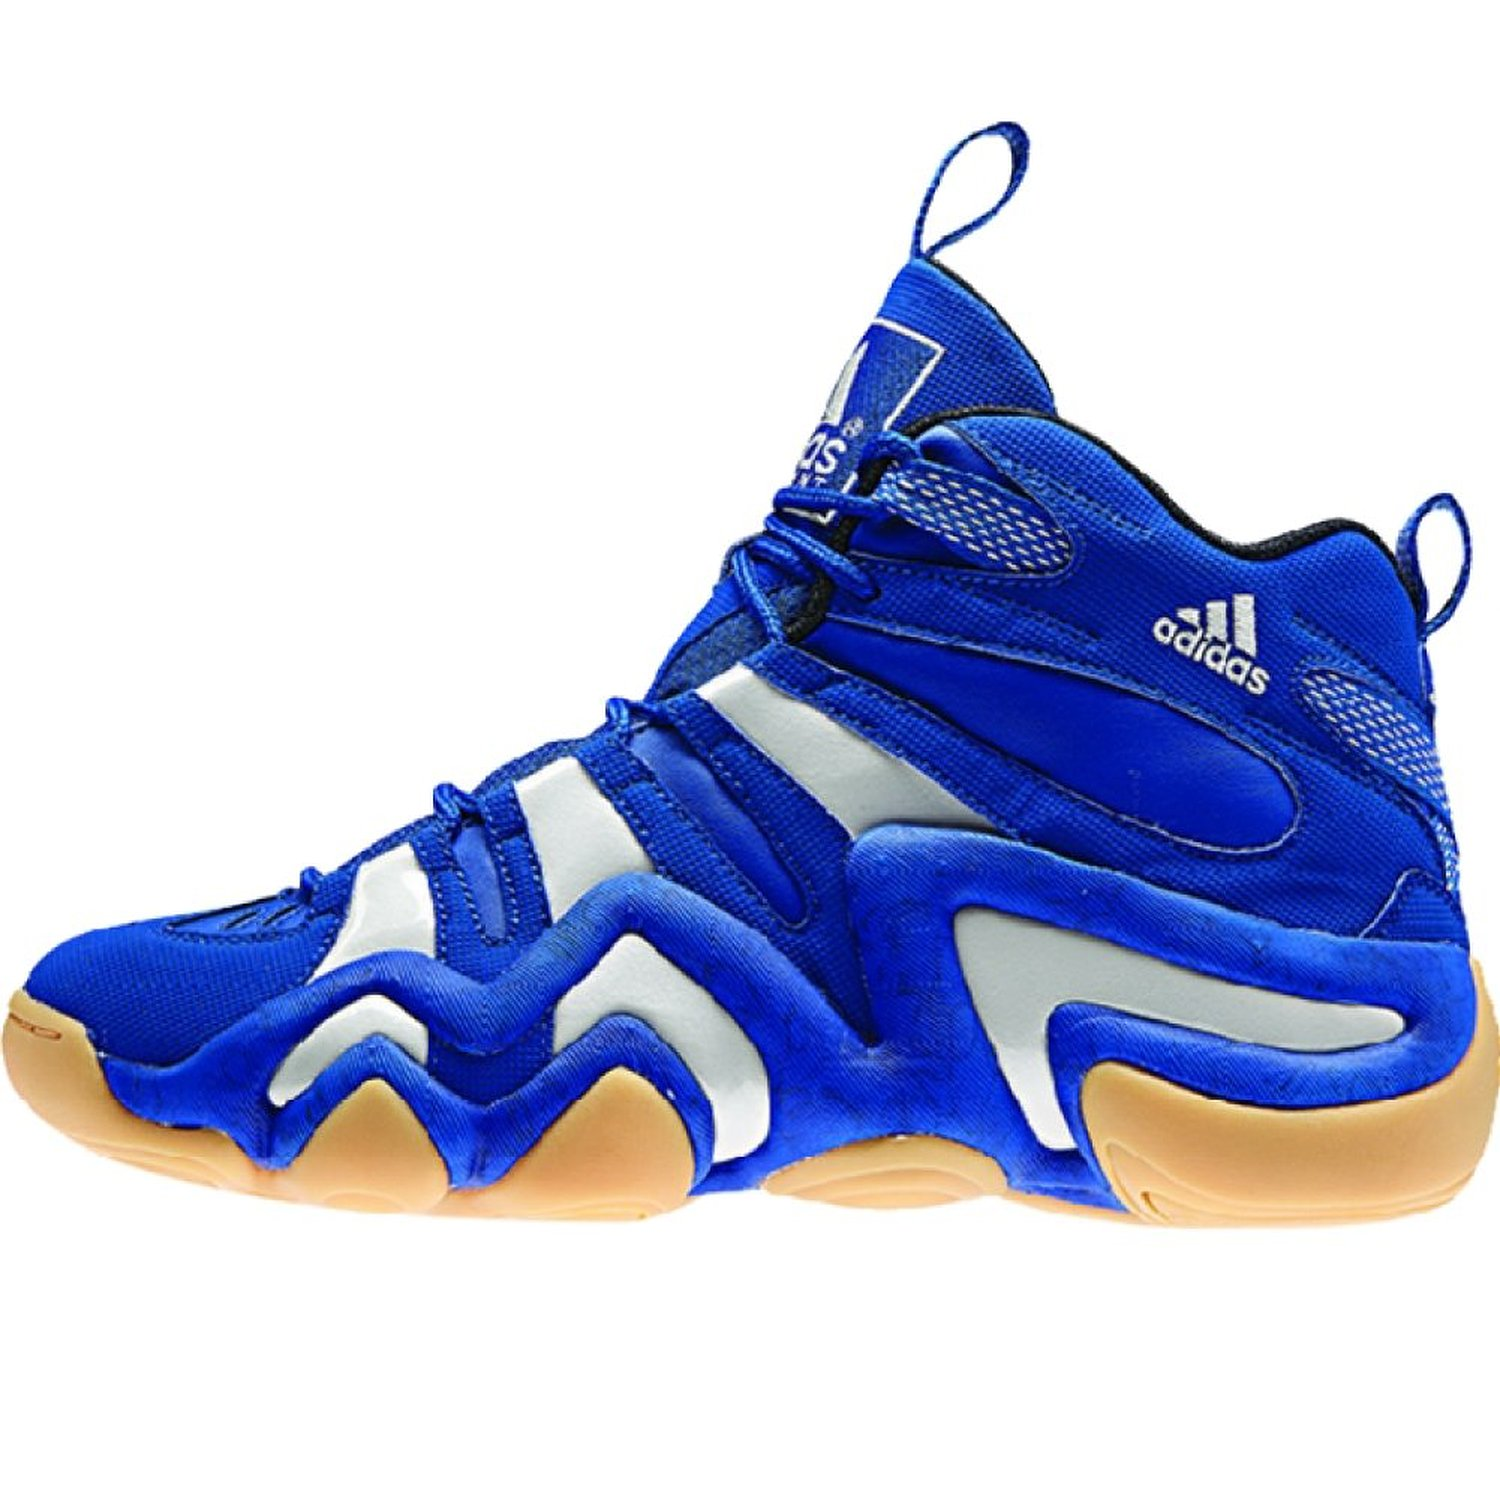 new product c0f4f c51dc Get Quotations · Crazy 8 Mens in RoyalWhiteGum by Adidas, 11.5